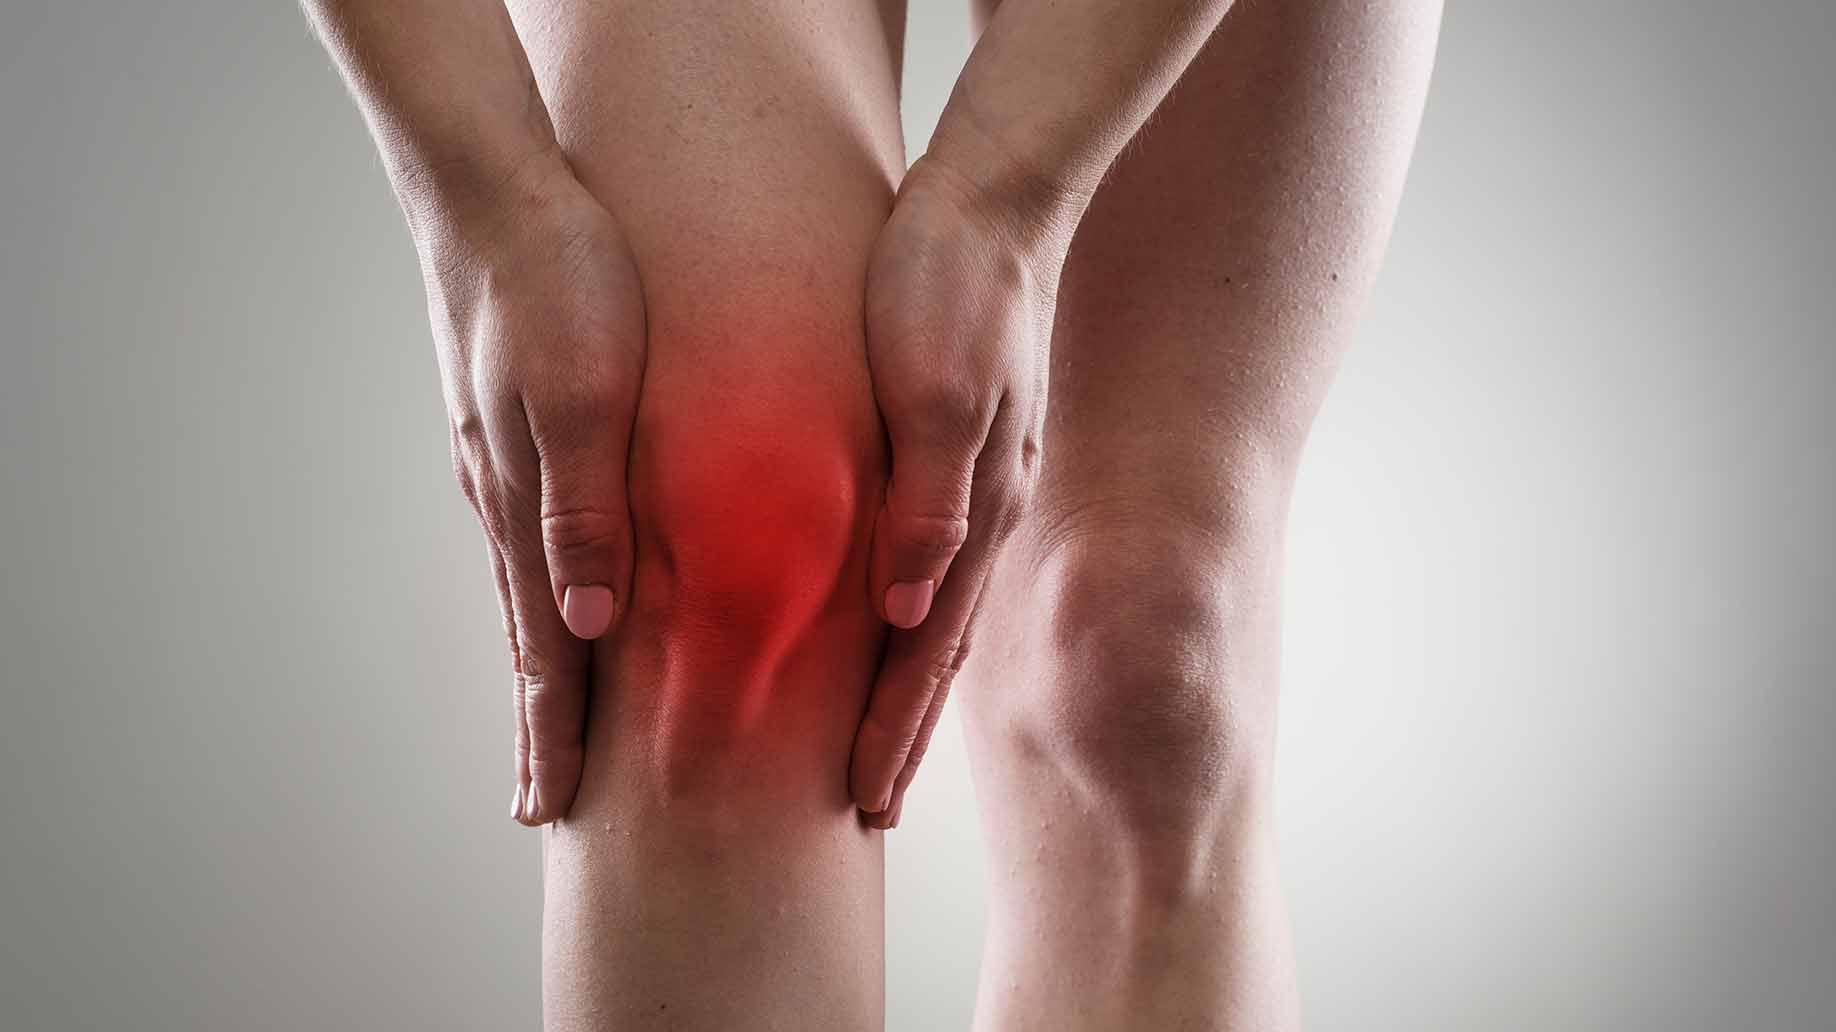 natural health benefits coconut oil reduces inflammation arthritis pain swelling redness joints